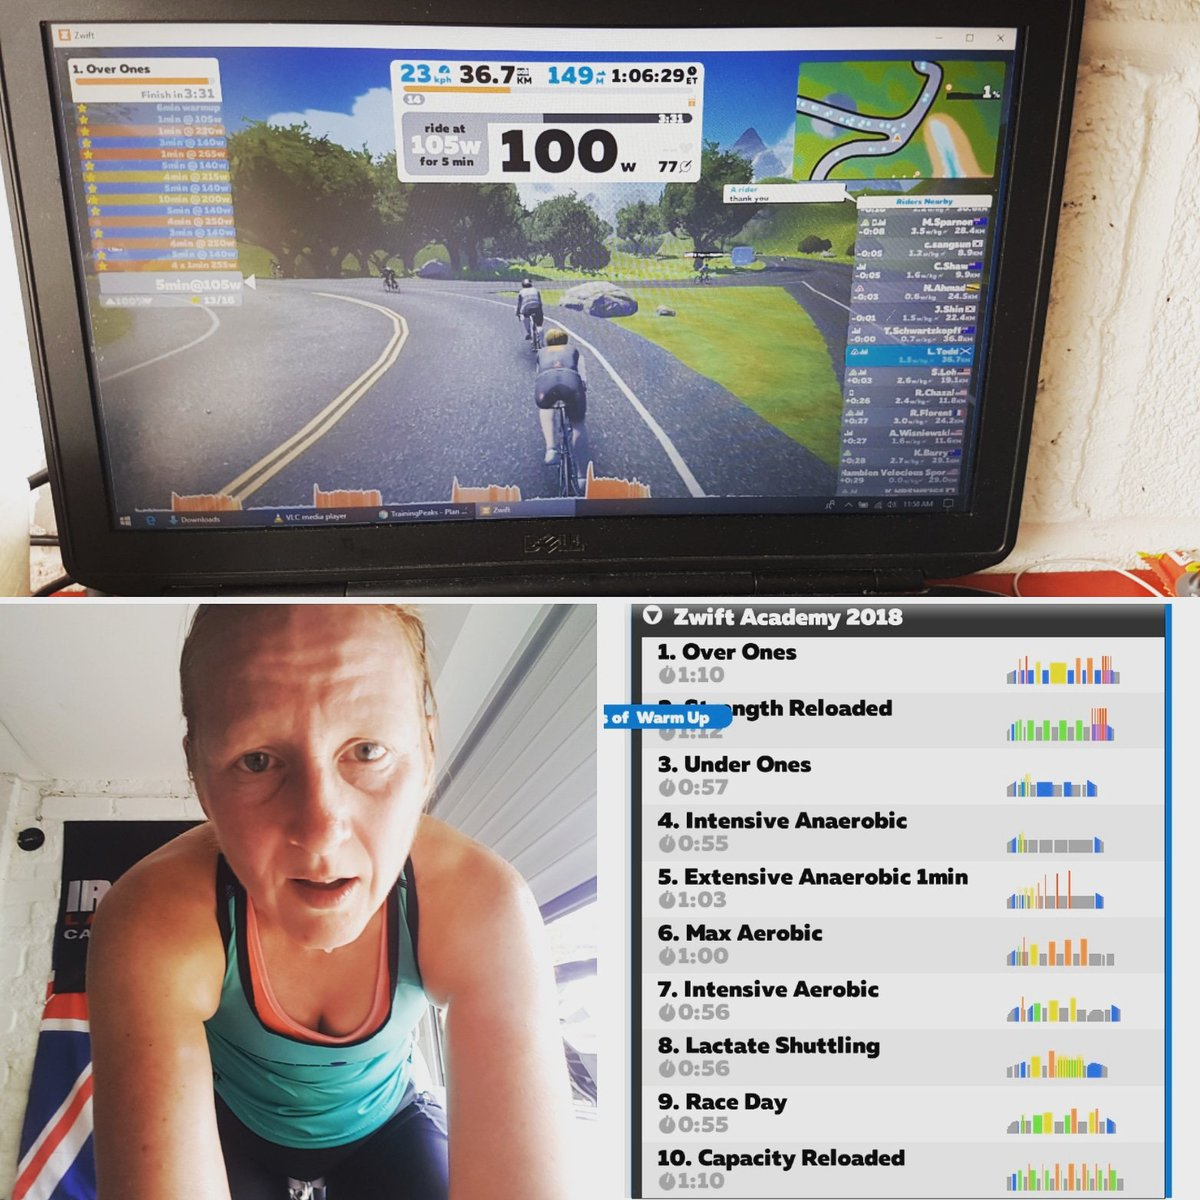 test Twitter Media - OMG my thighs are burning. First @GoZwift academy session today and I am ruined 😂 bring on the next one 😲 #sweatfest #TurboTuesday #gozwift https://t.co/rAXuiJNZ2V